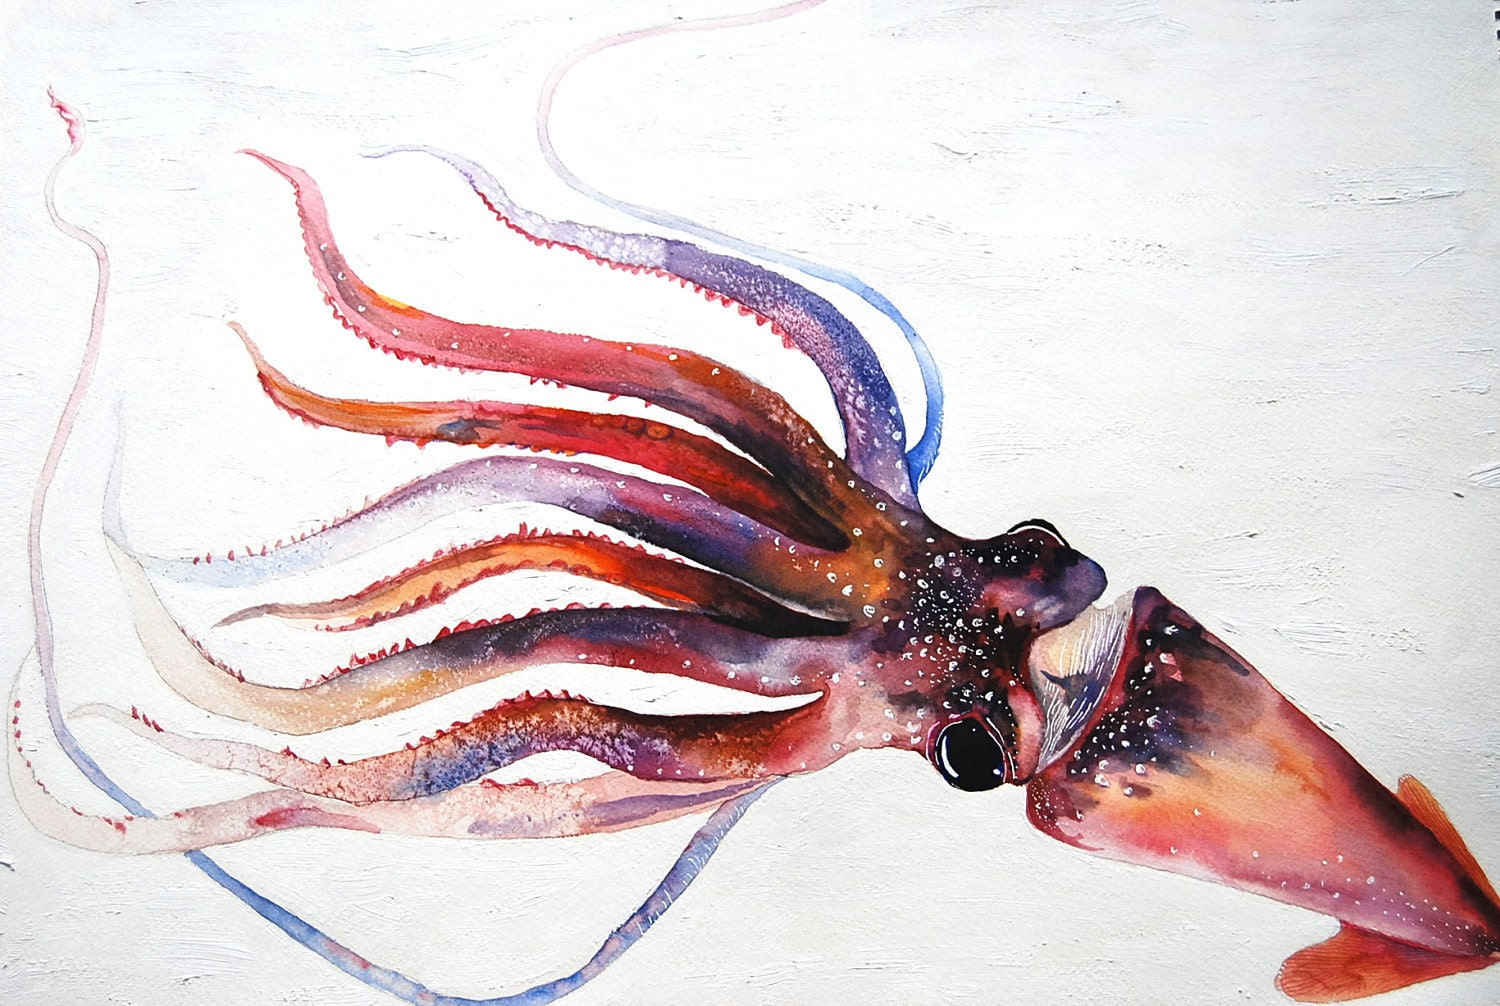 A Squid Original Oil and Watercolor Painting